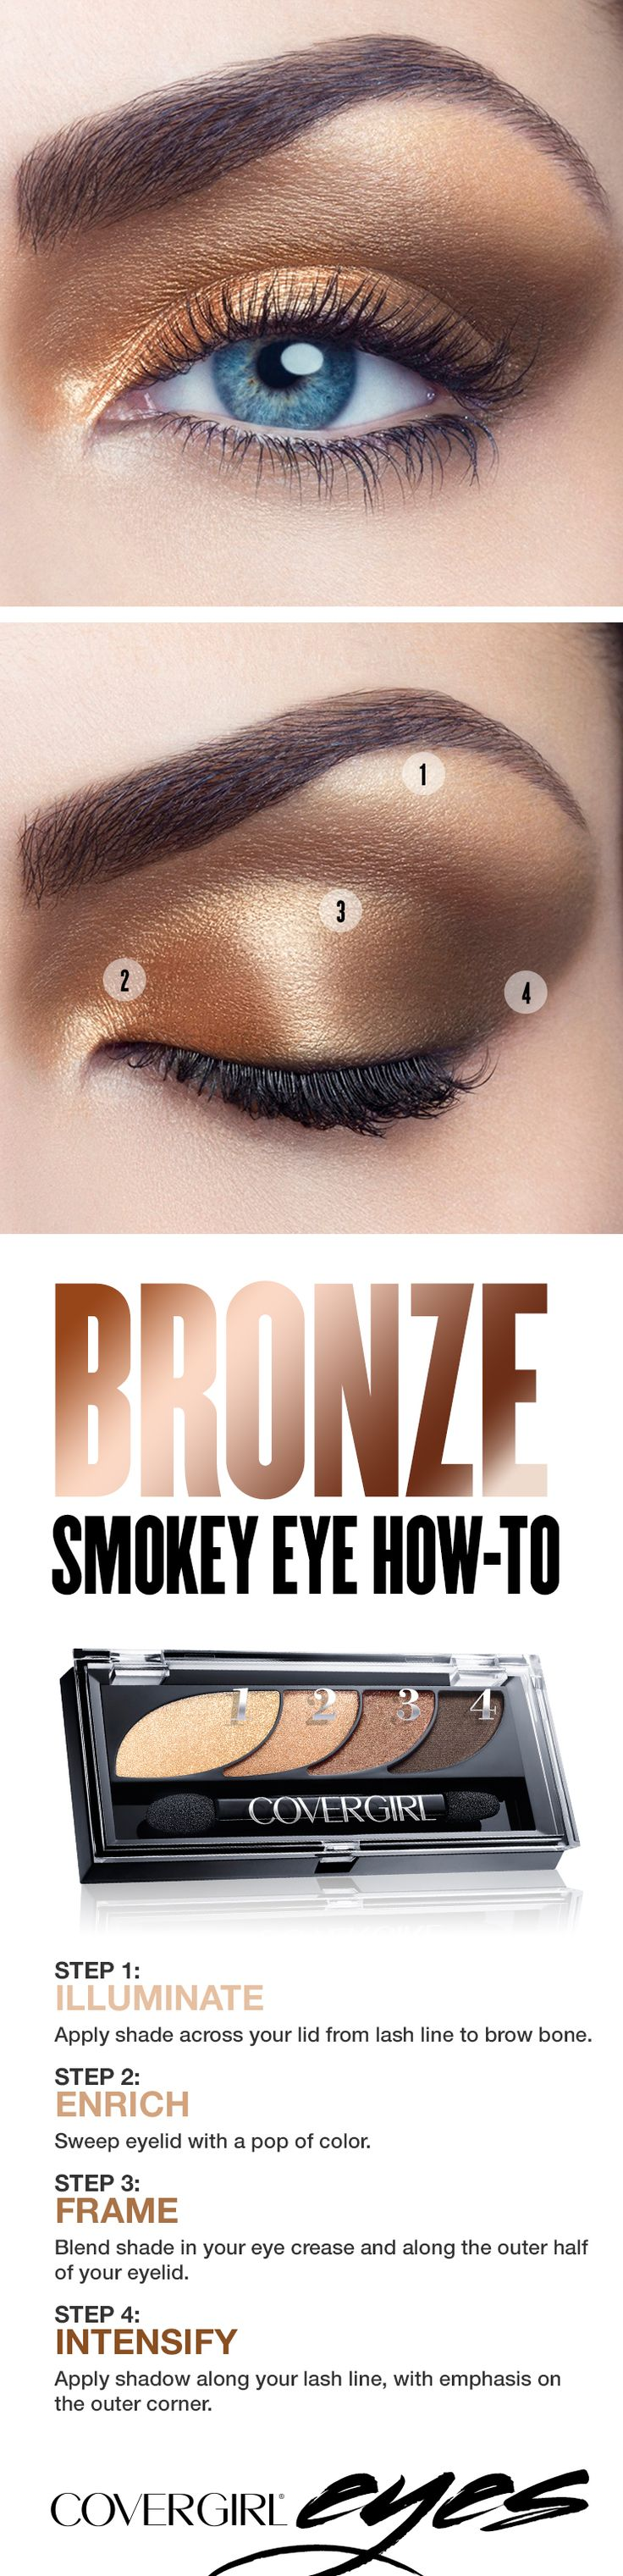 Try our step-by-step tutorial this holiday season for a glam golden bronze smokey eye, featuring COVERGIRL Eyeshadow Quads in Go for the Golds. This makeup palette makes it easy to add dramatic shimmer to your look. Perfect for Christmas or New Year's Eve parties when you'd like to try something other than a standard black smokey eye.